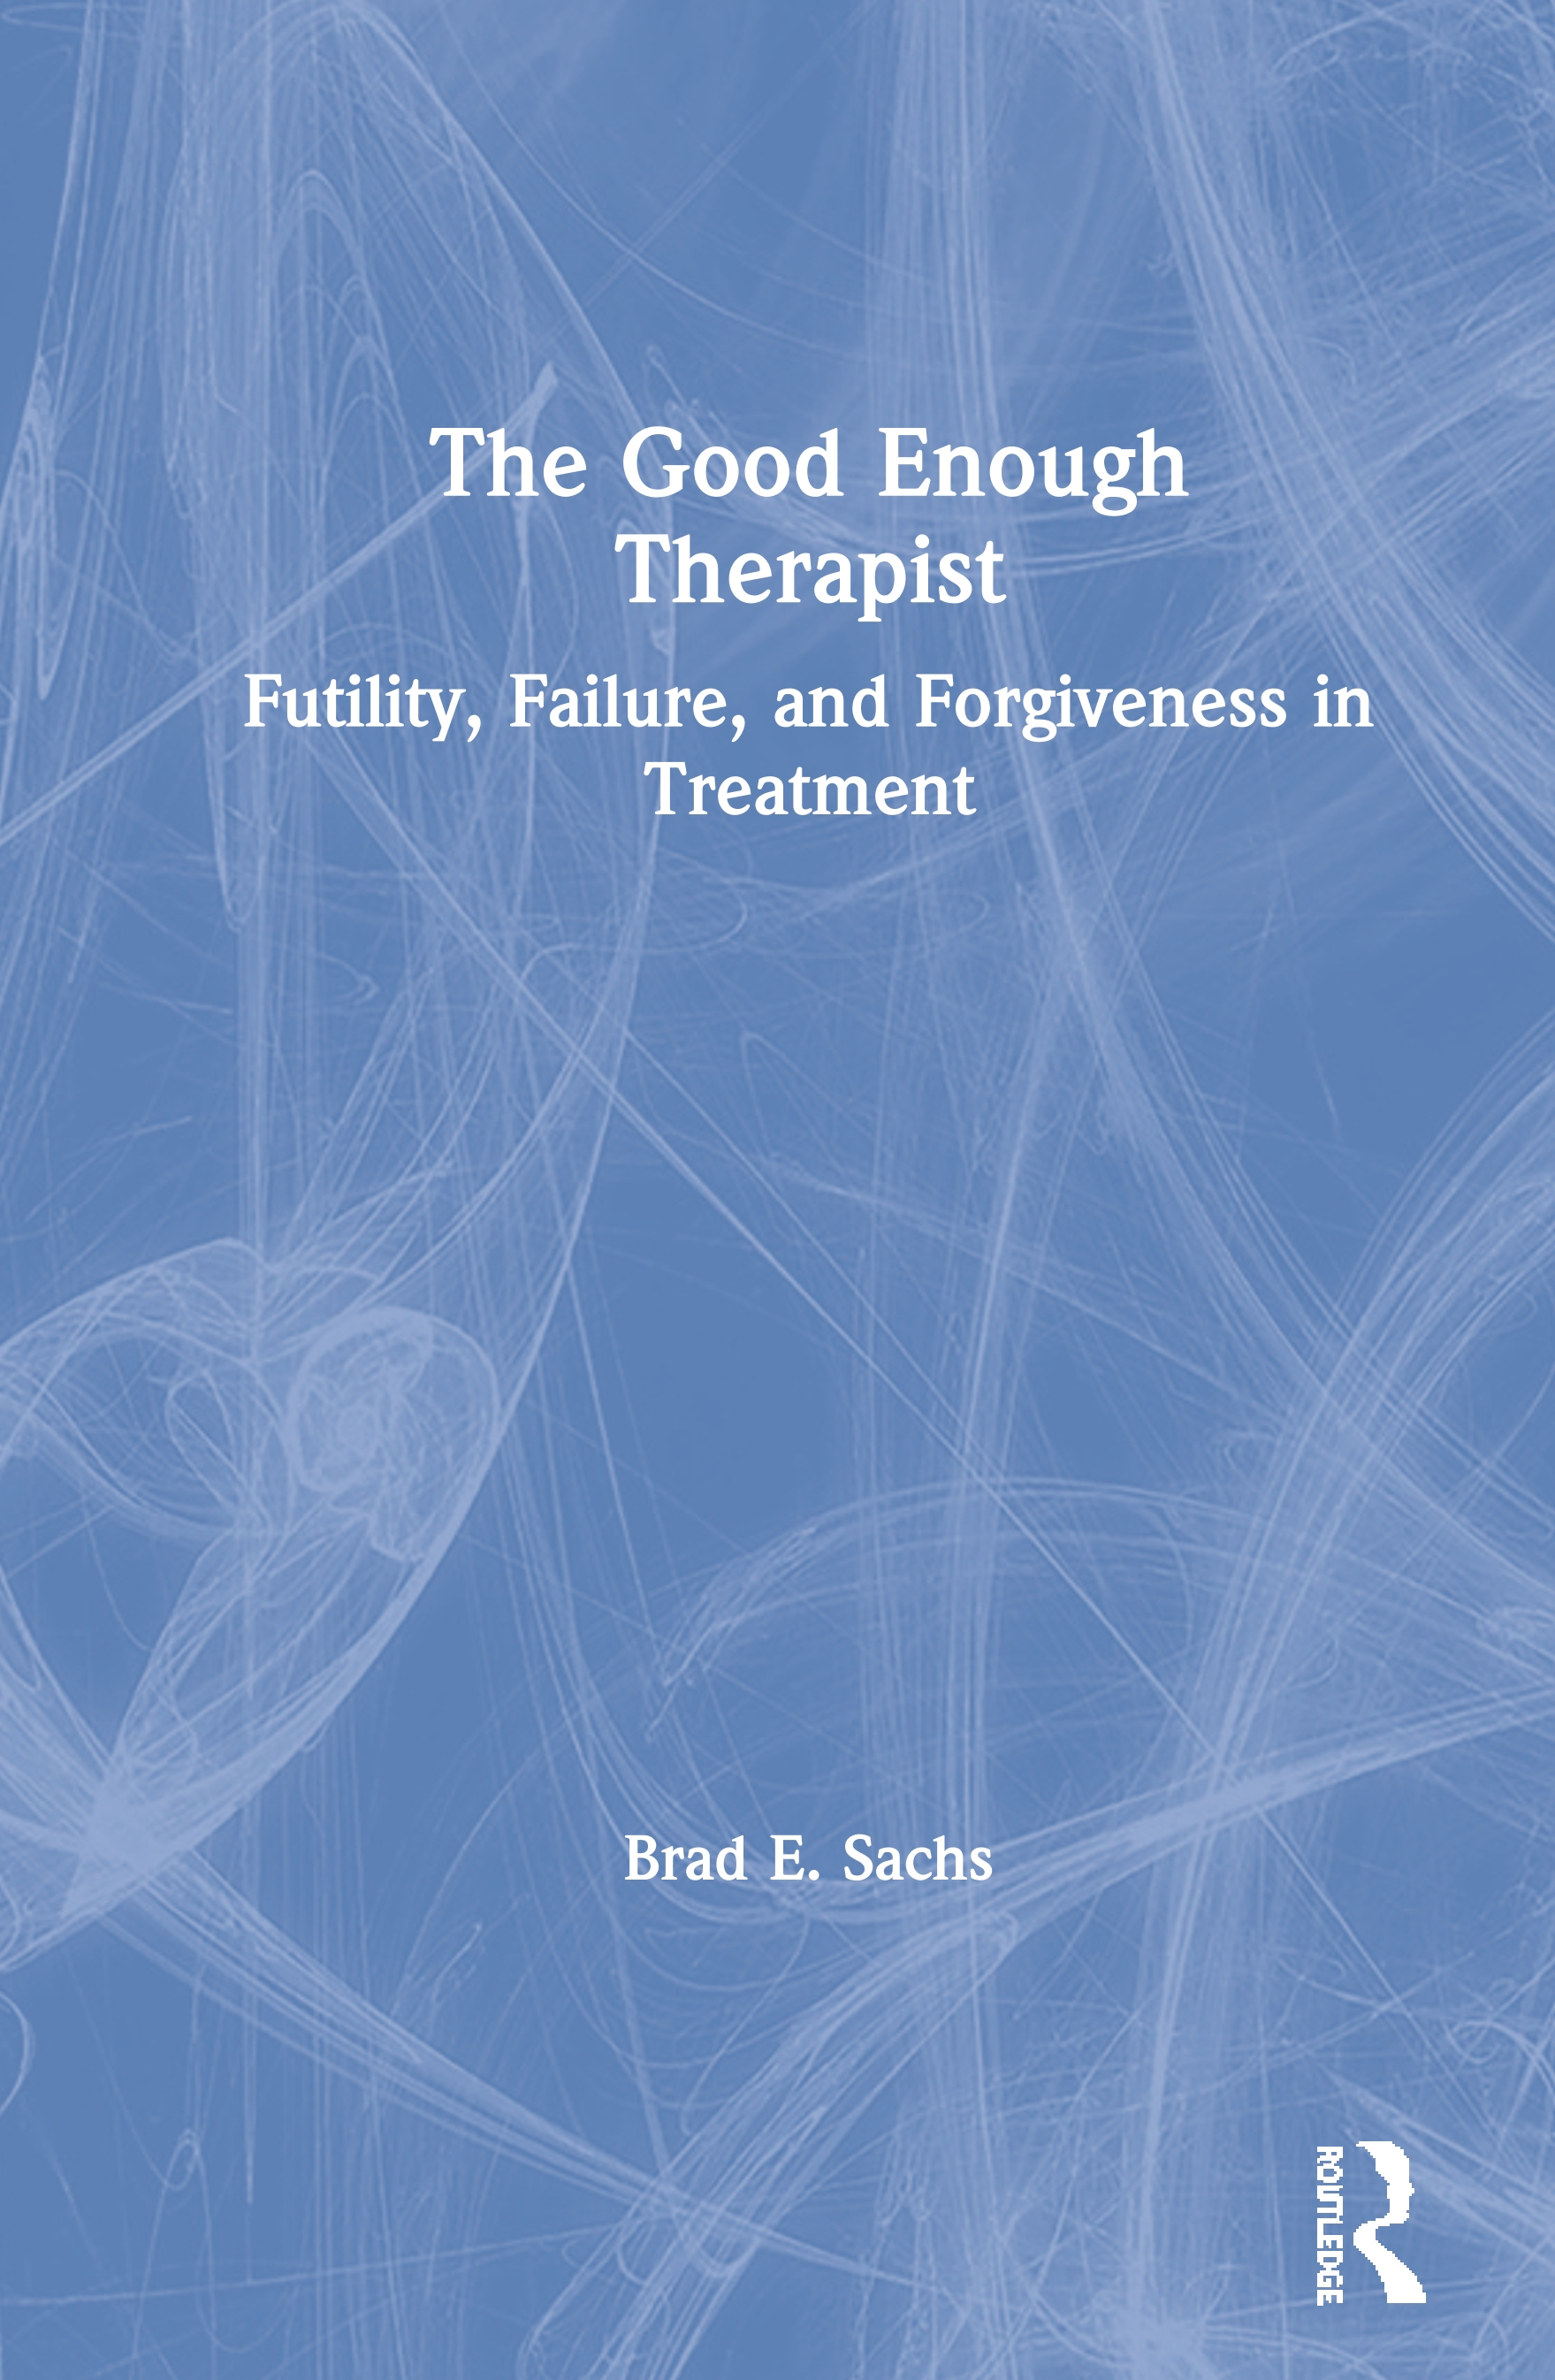 The Good Enough Therapist: Futility, Failure, and Forgiveness in Treatment book cover